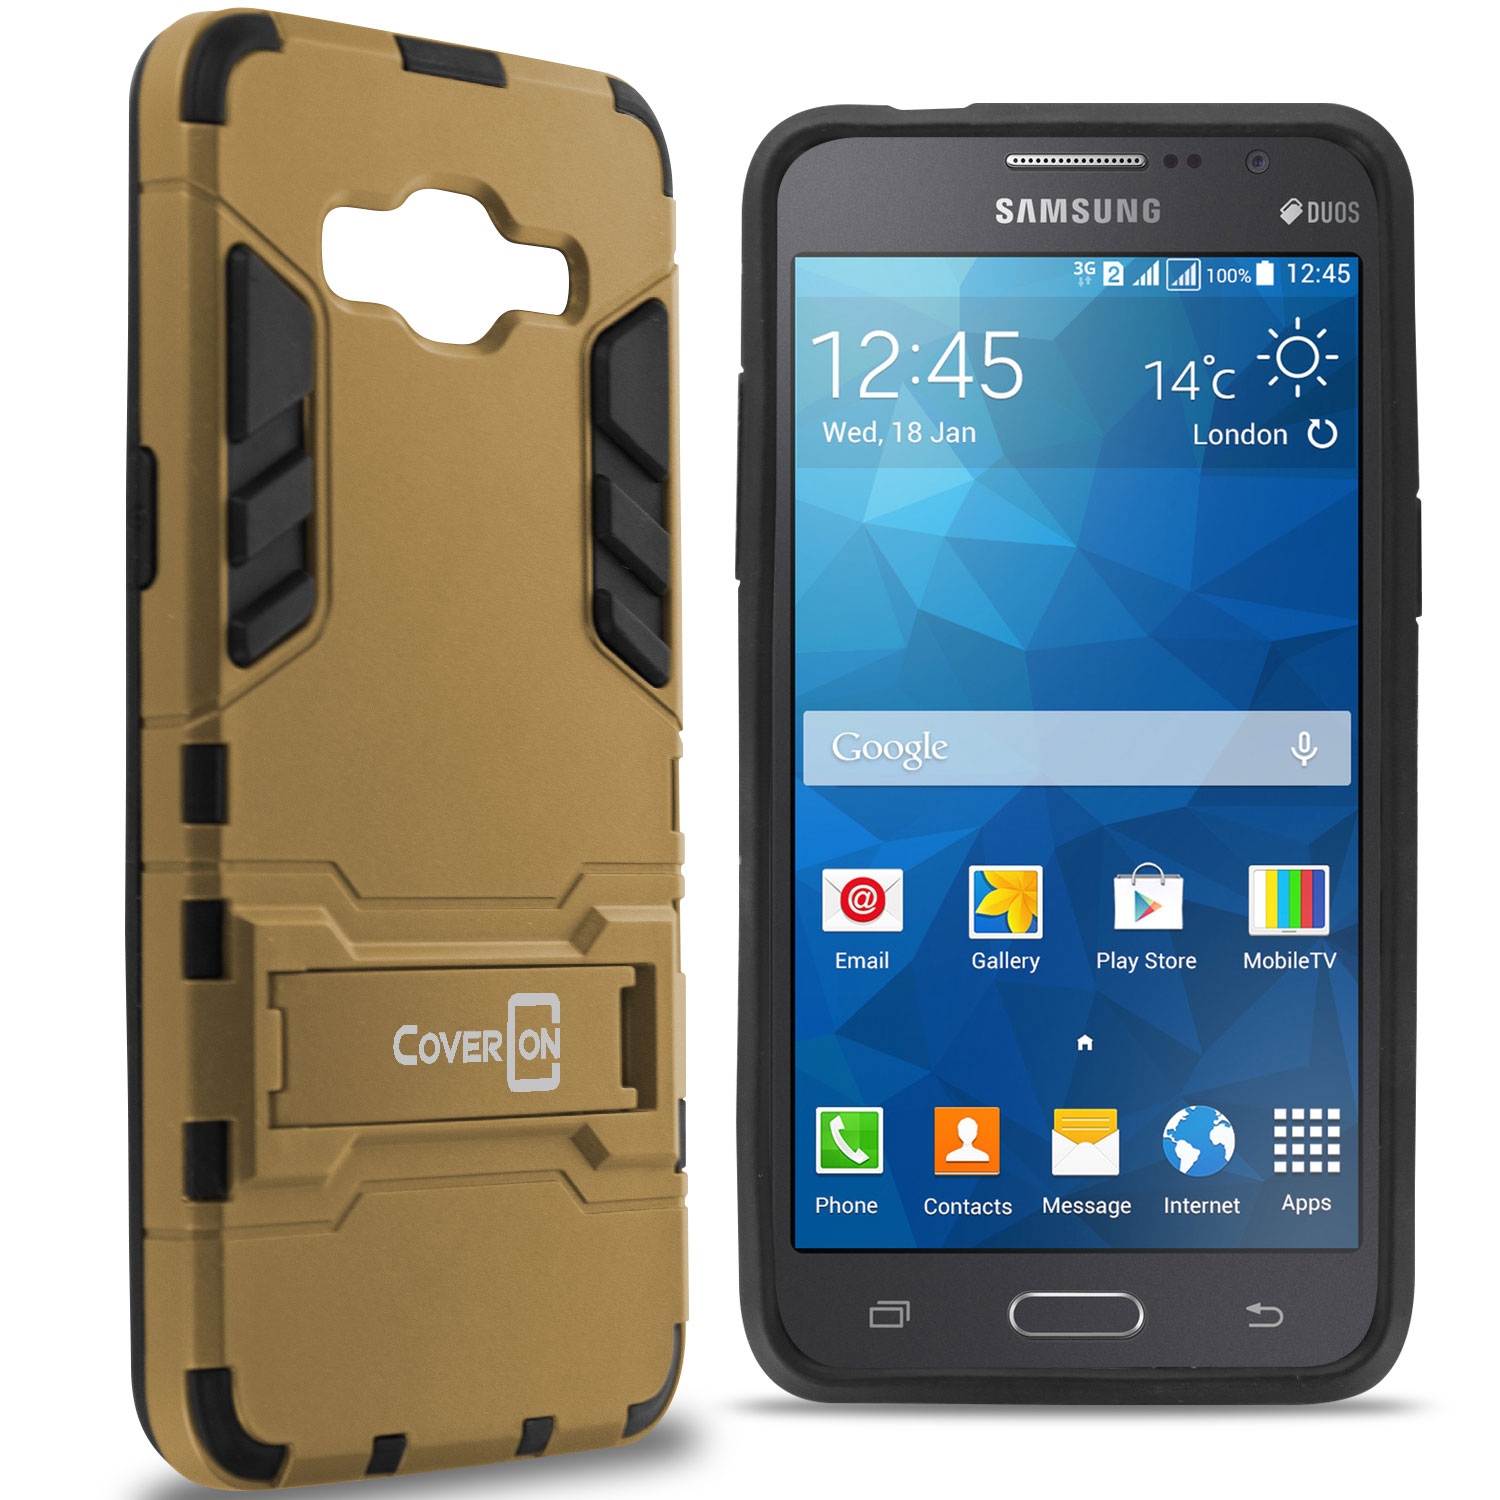 wholesale dealer 8e28c 9f057 Details about For Samsung Galaxy Grand Prime Case Armor Kickstand Slim Hard  Cover Gold / Black